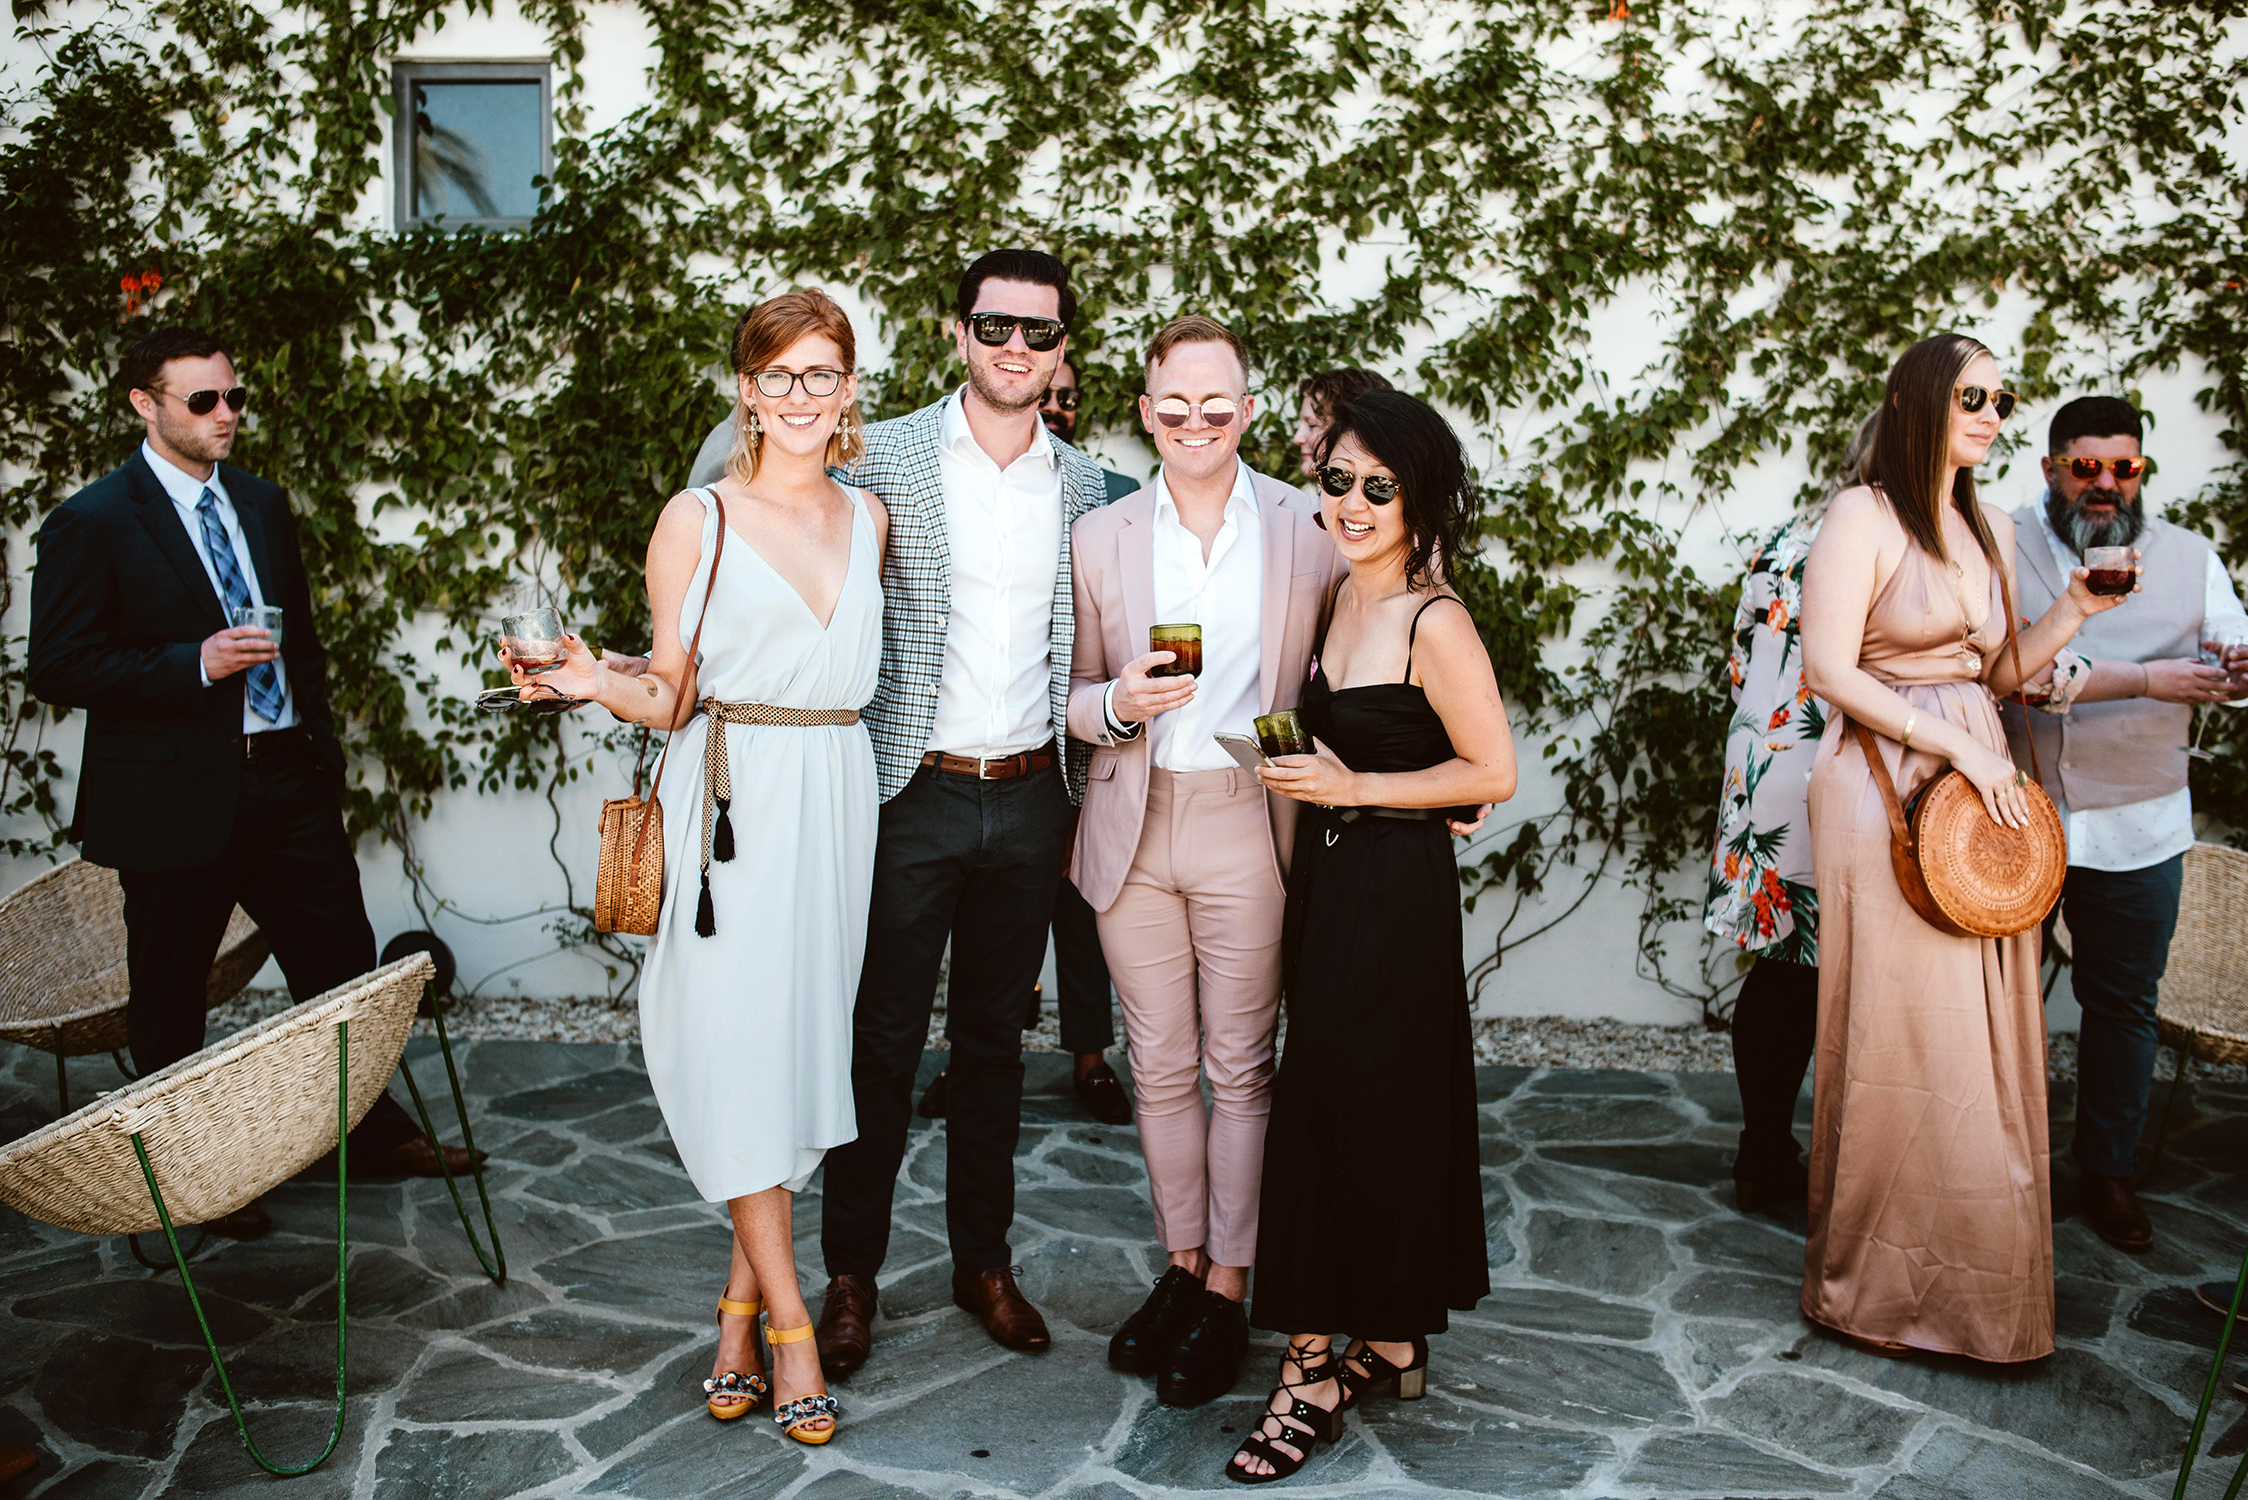 How to Maximize the Amount of Time You Get to Spend with Your Wedding Guests